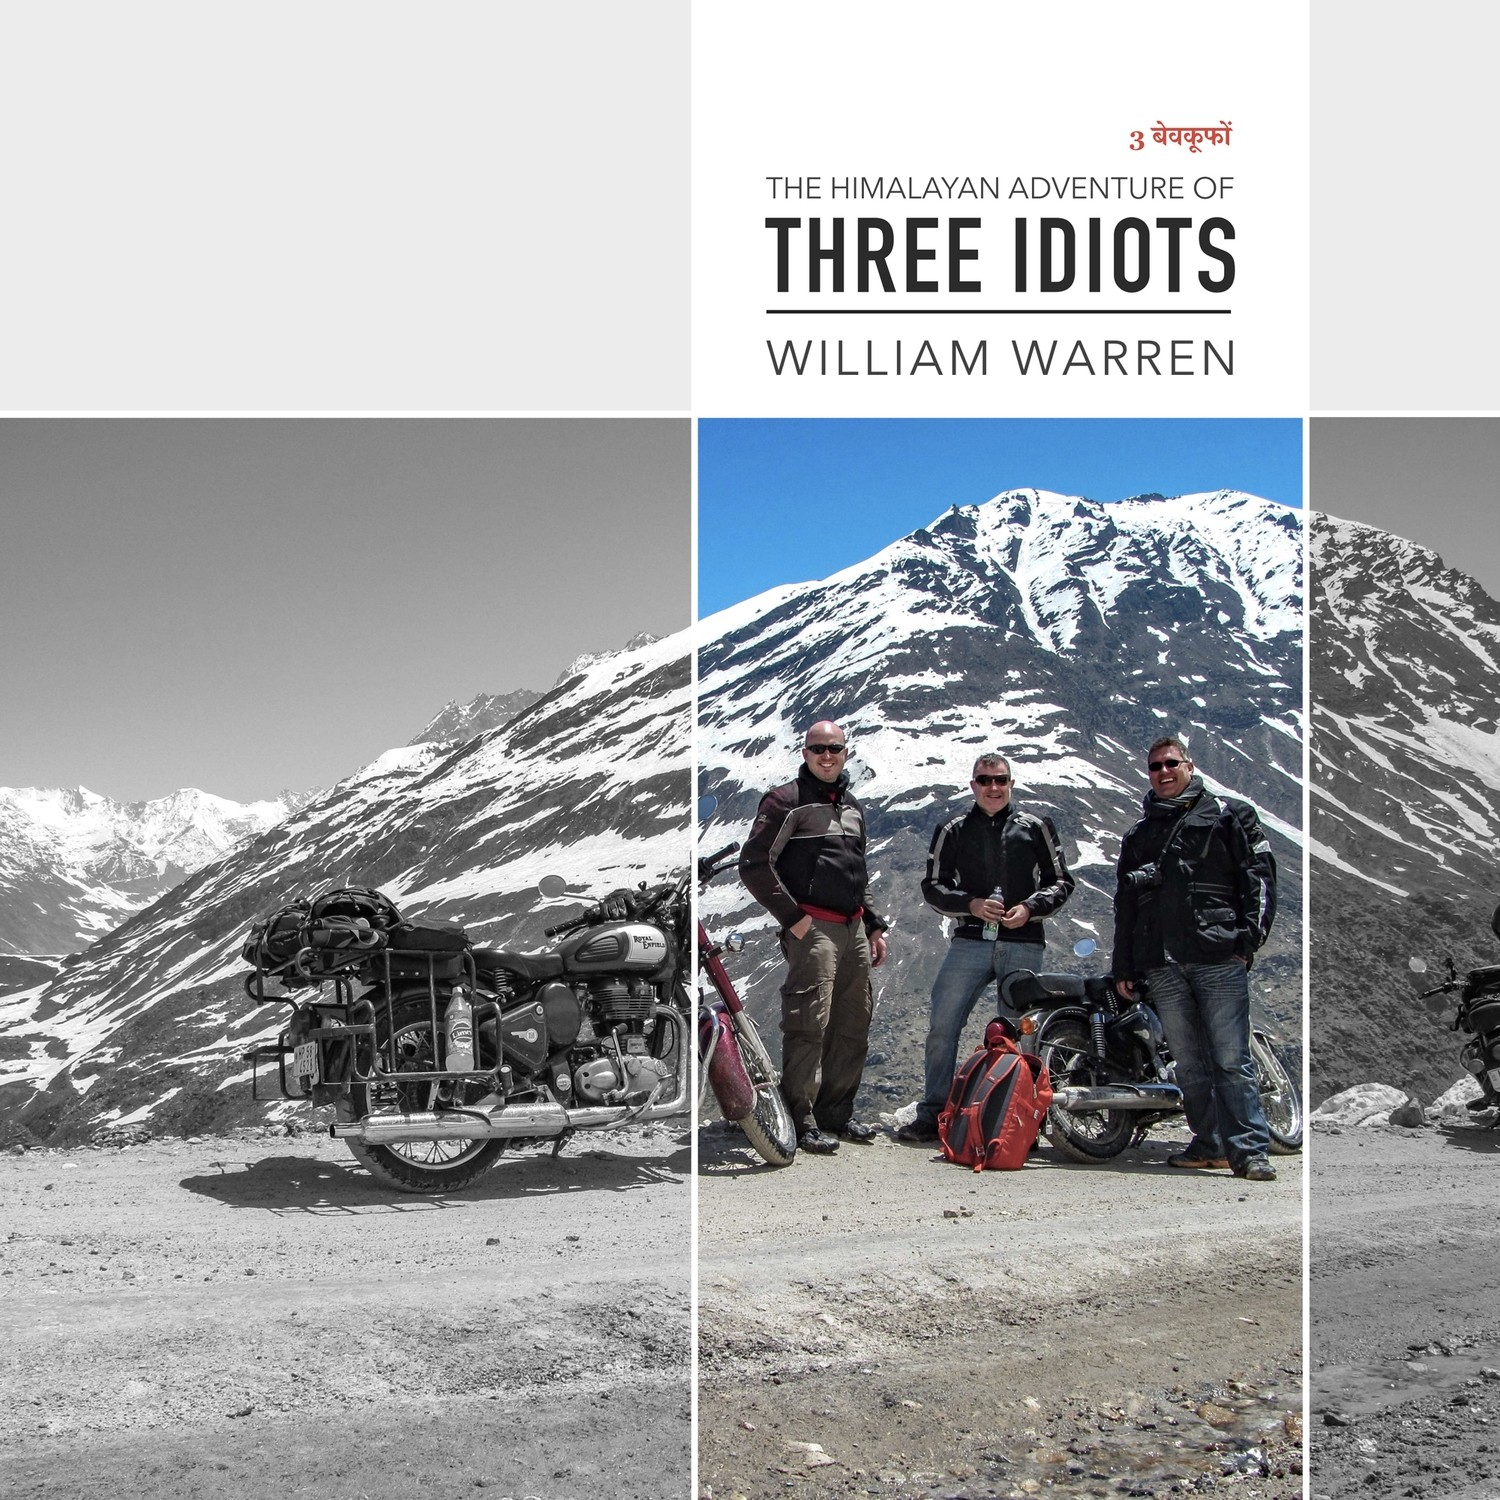 The Himalayan Adventure of Three Idiots - 210mm x 210mm High-quality Hardcover (0.75kg)